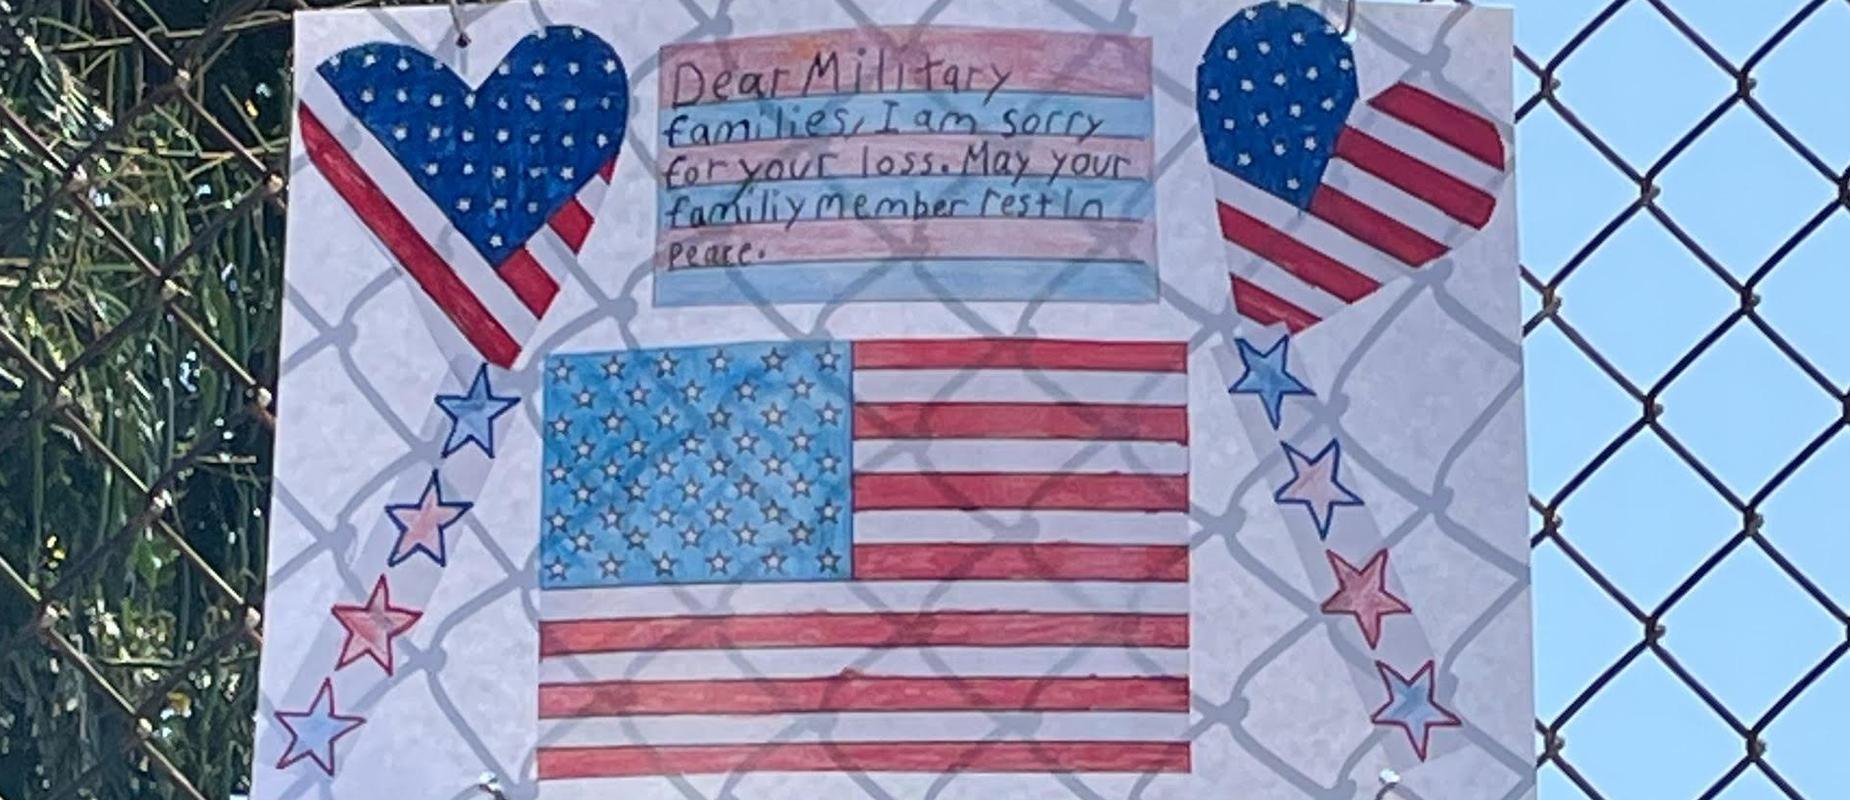 Military Families poster